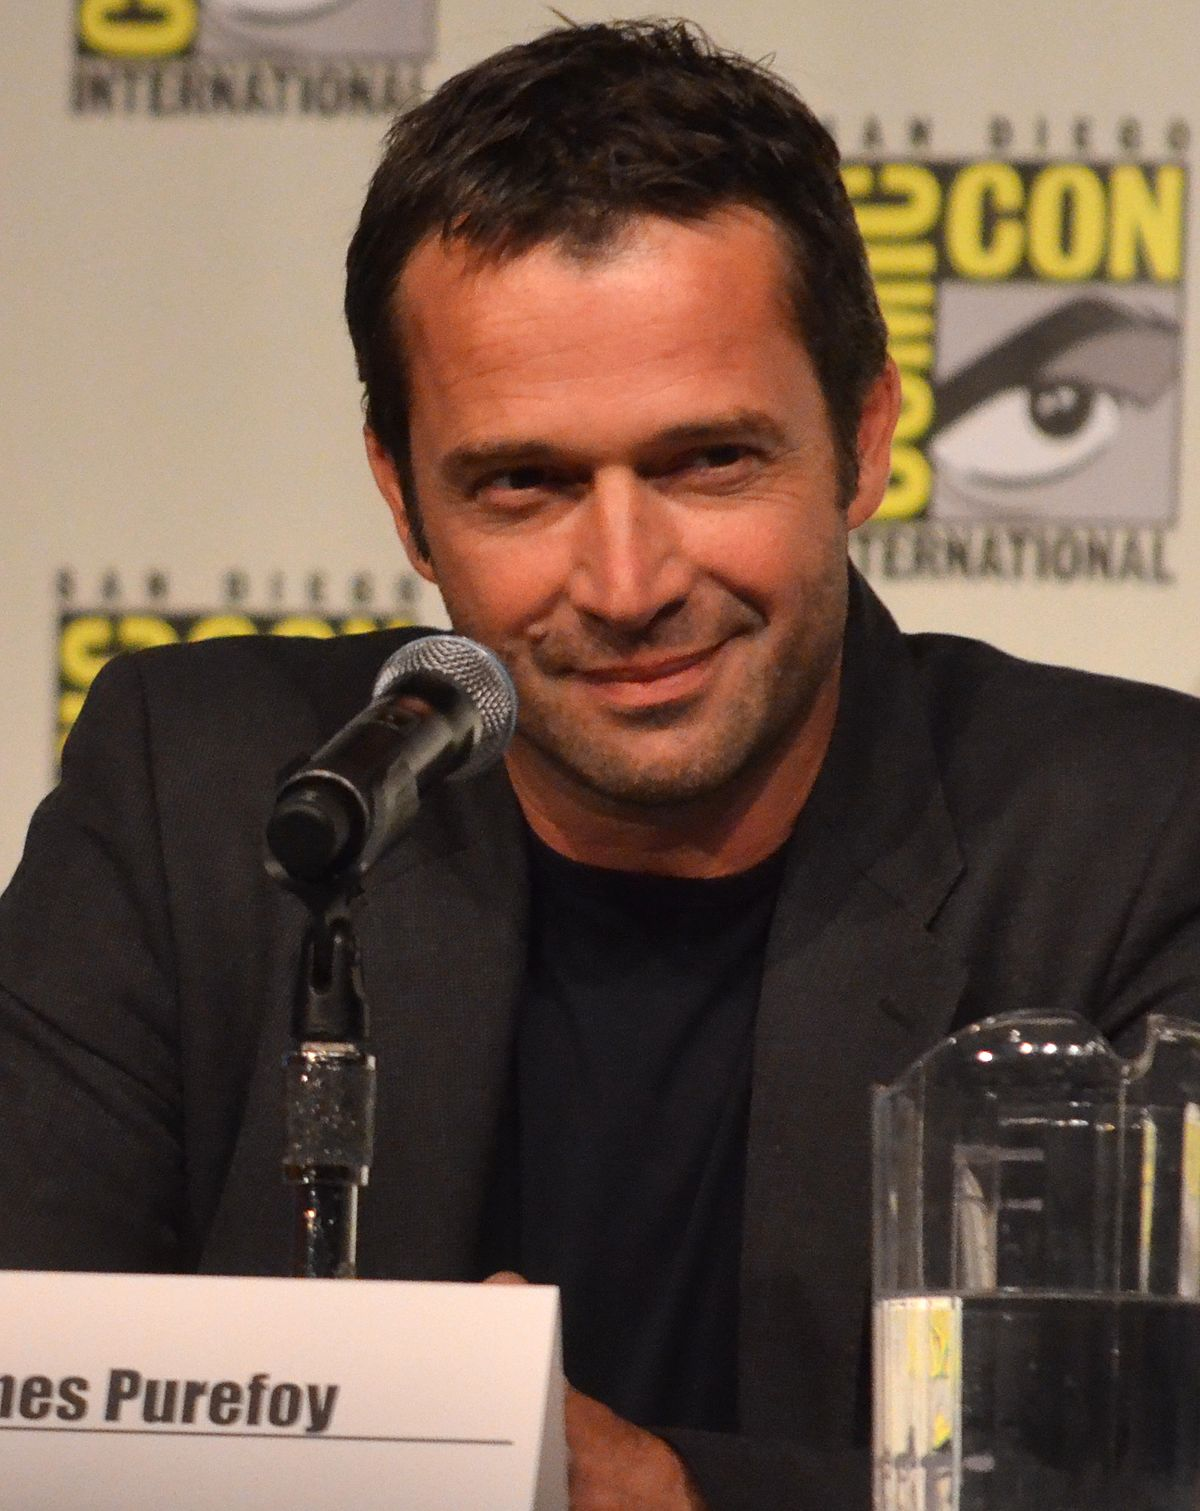 James Purefoy (born 1964)